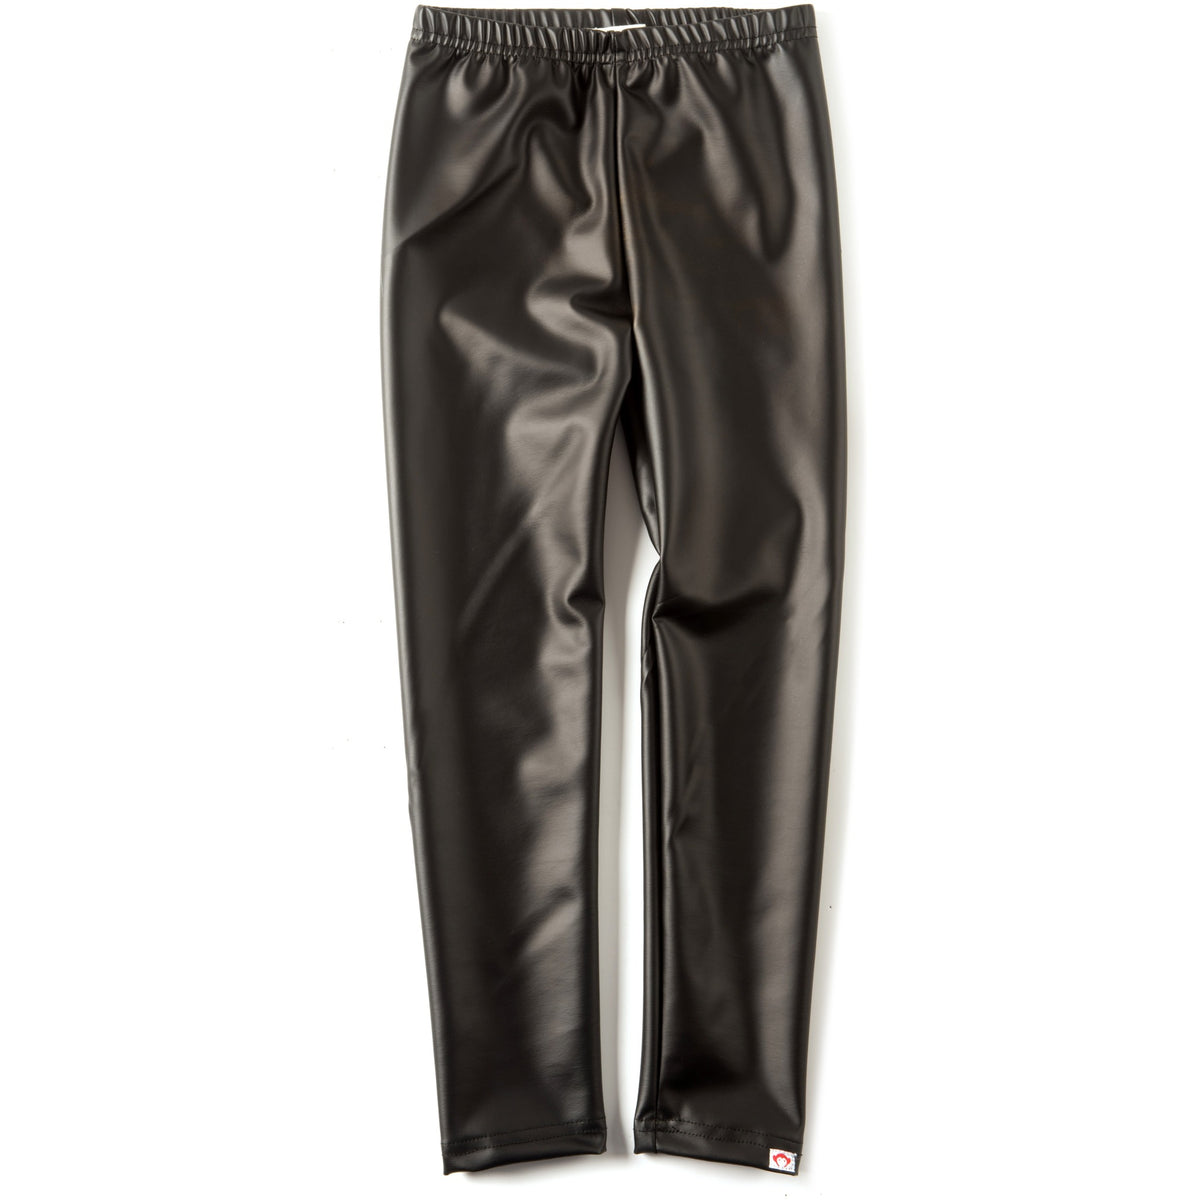 Shiny Black Legging - Petit Atelier Enfant